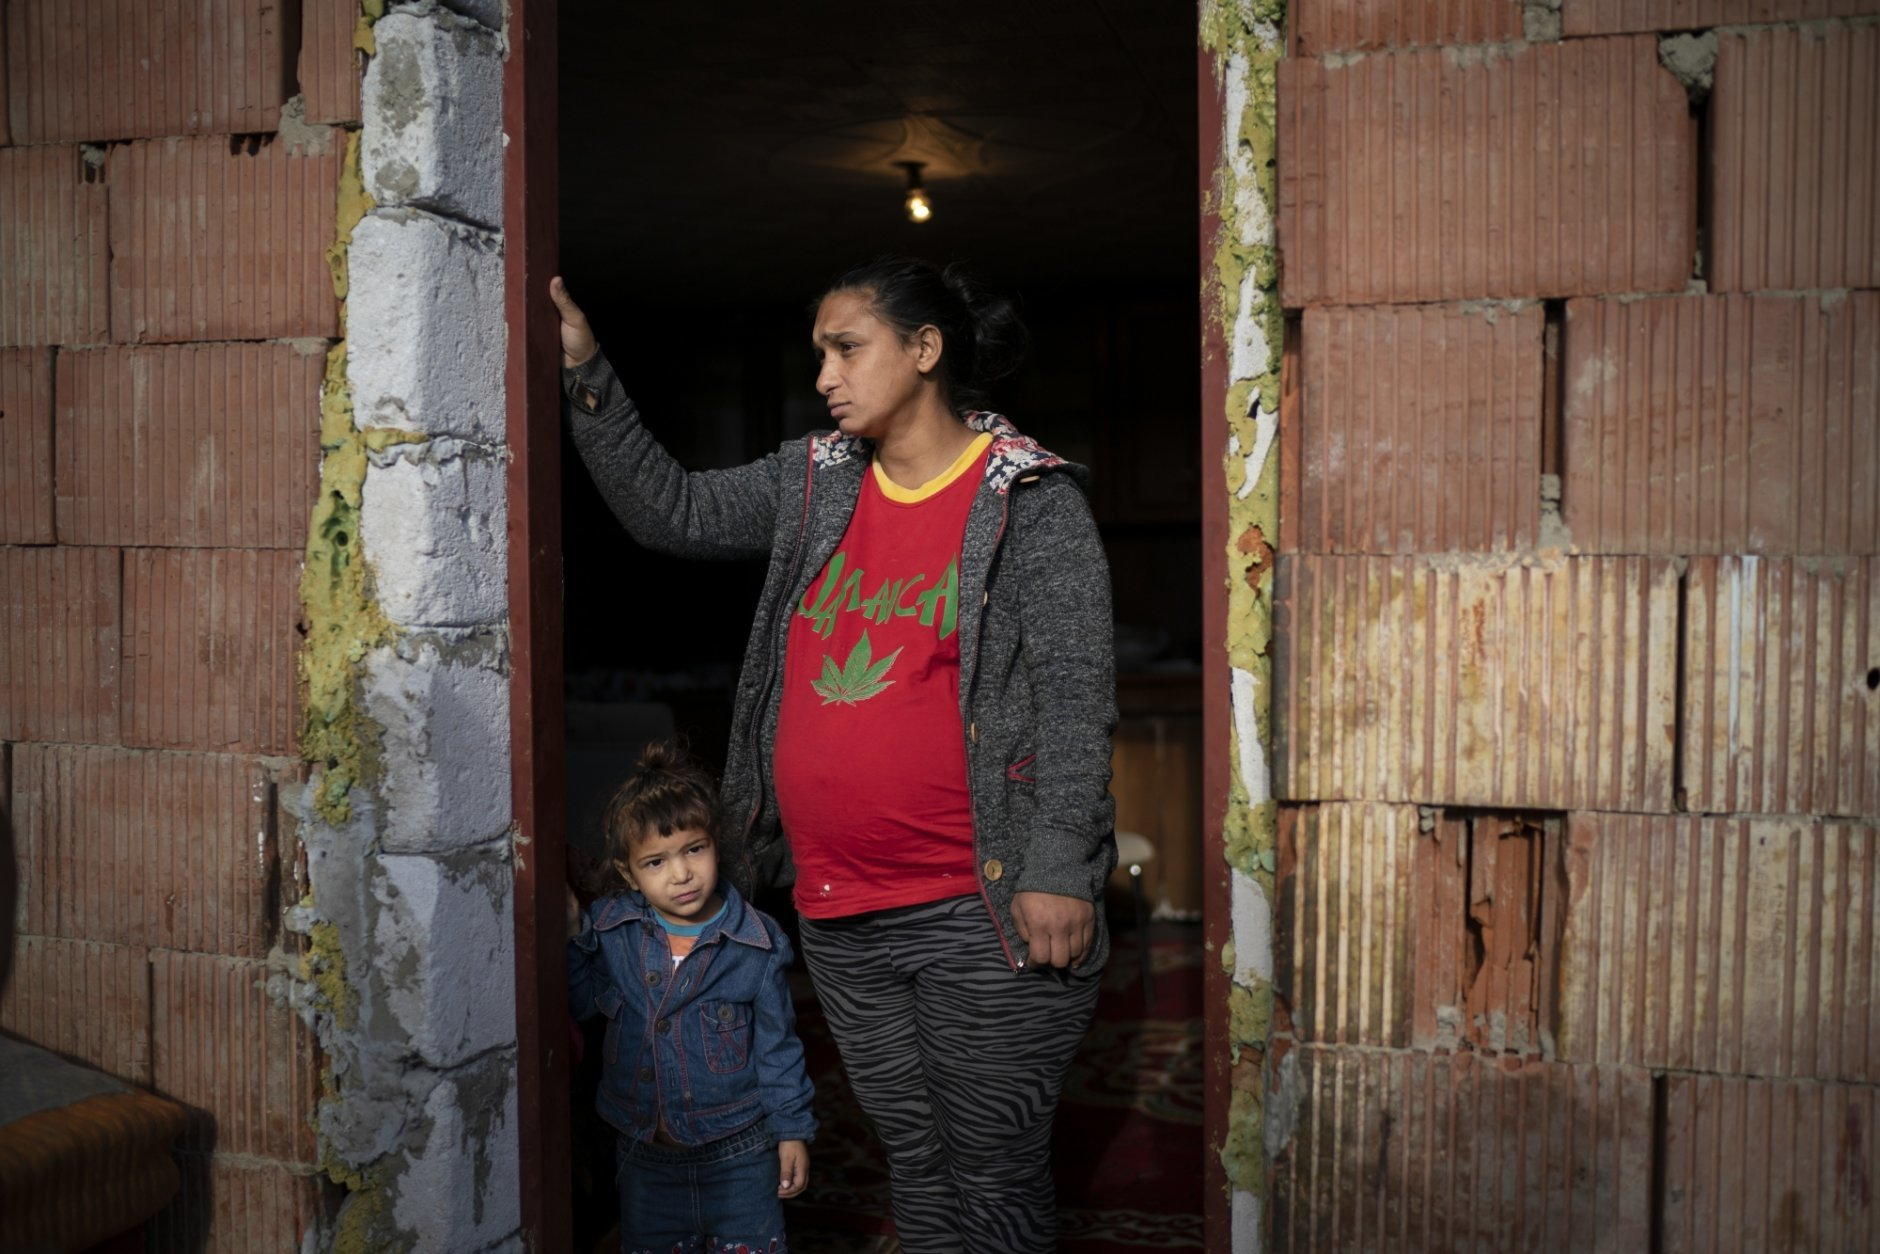 In this Nov. 14, 2018, photo, Jarmila Noskova, 33, stands at the entrance of her house with her daughter in Podhorany village near Kezmarok, Slovakia. Noskova, a Roma woman now pregnant with her seventh child, said she cried for days every time she was forced to remain in the hospital after birth, terrified the hospital would alert the police if she left. (AP Photo/Felipe Dana)